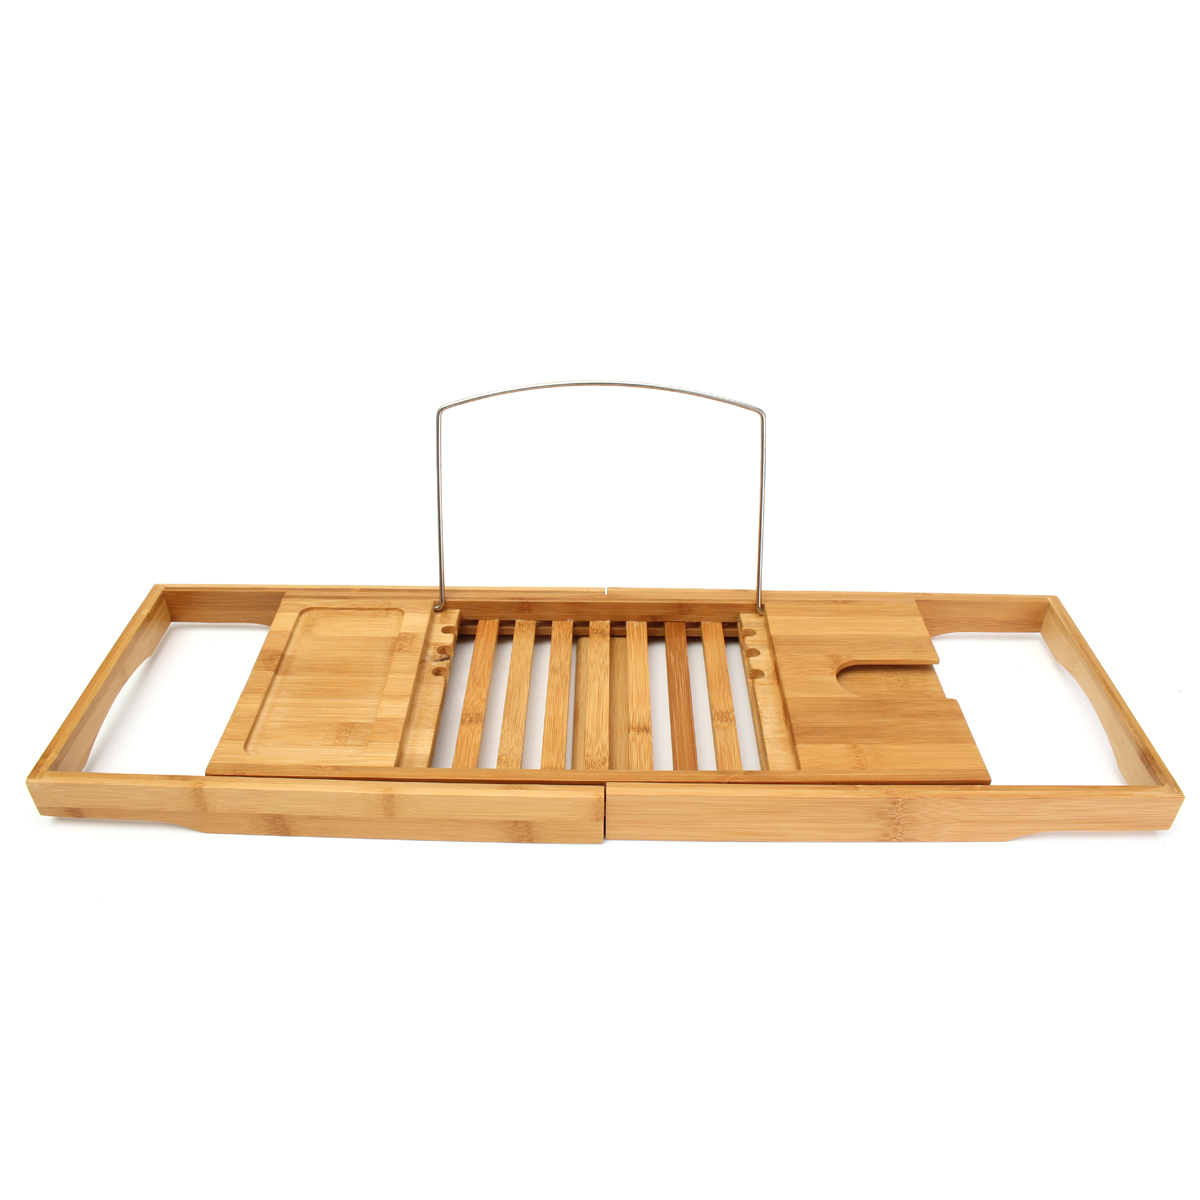 Bamboo Bathtub Caddy Tray Organizer with Extending Sides Reading ...